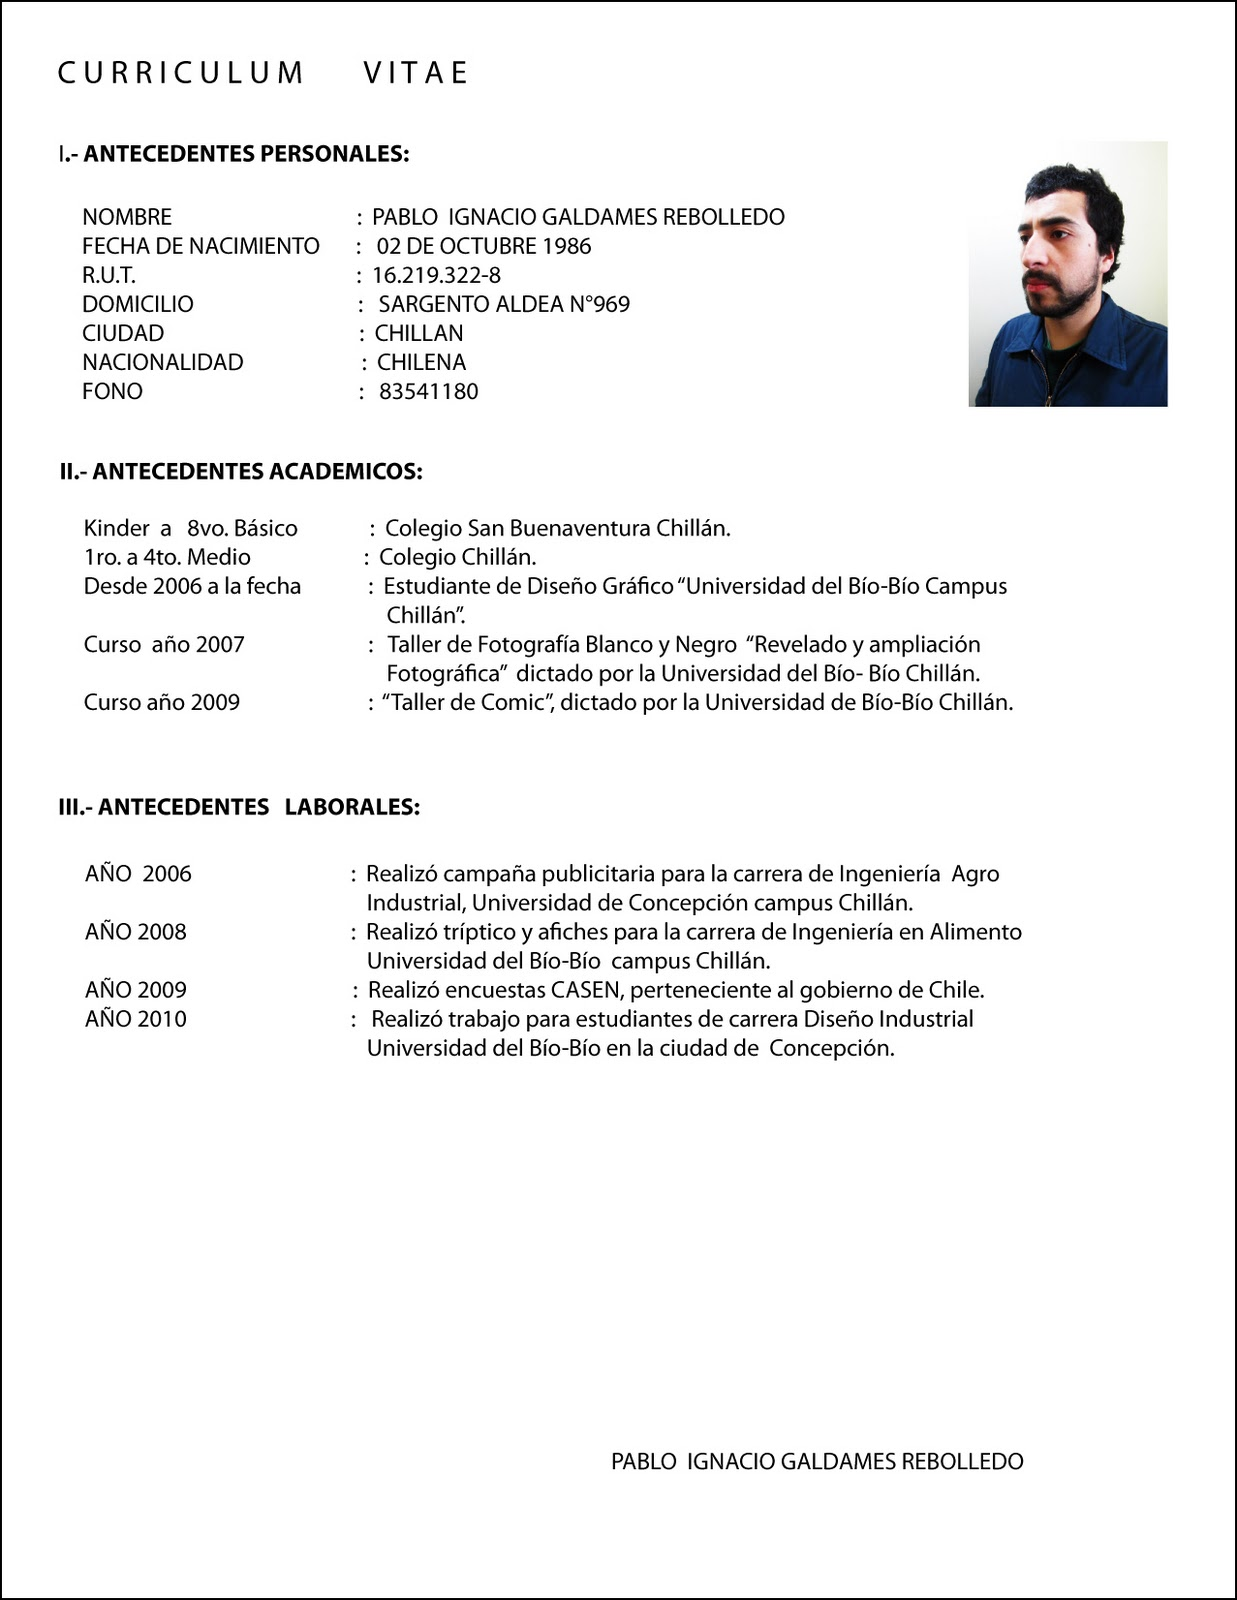 Curriculum vitae Images - Frompo